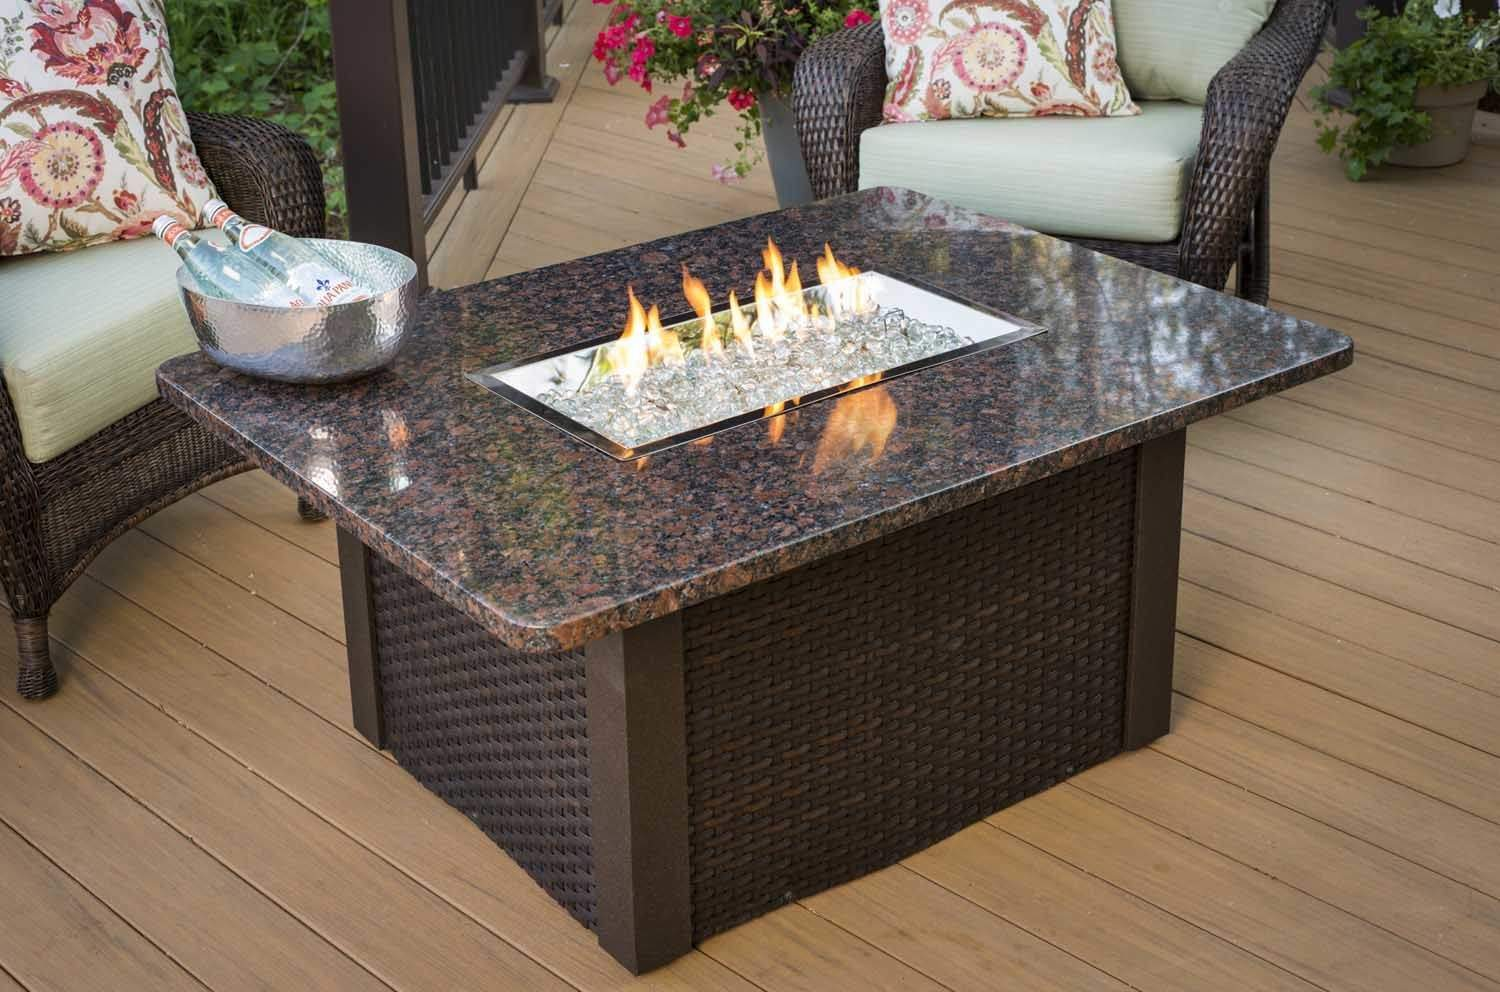 Outdoor Greatroom Grandstone Gas Fire Pit Coffee Table  : GS 1224 BRN W K1 from www.ebay.com size 1500 x 992 jpeg 145kB